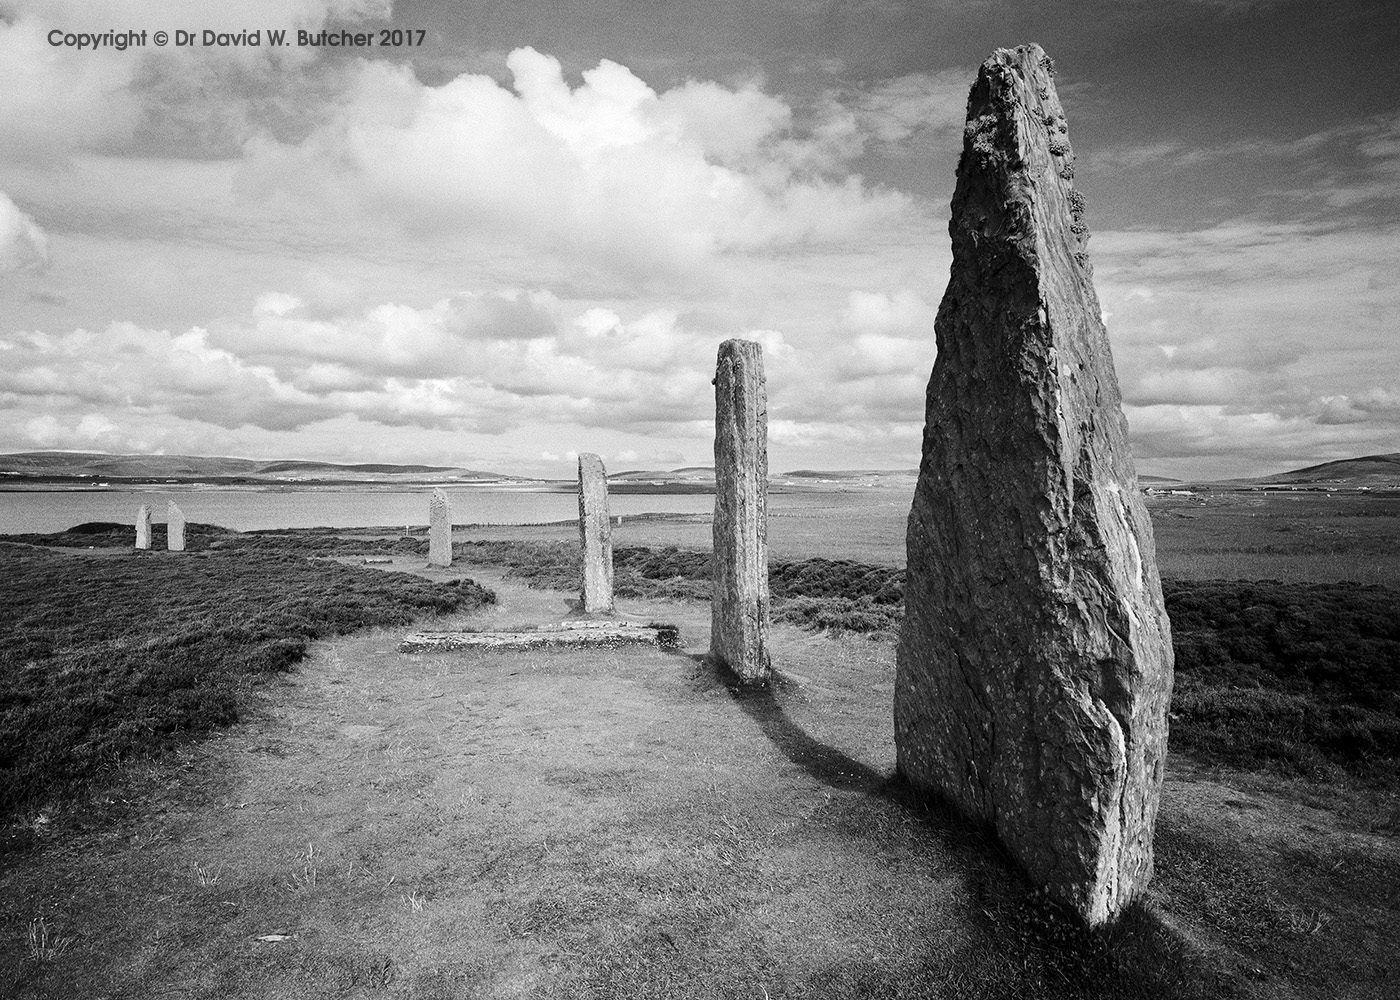 Ring of Brodgar Stones, Orkney, Scotland